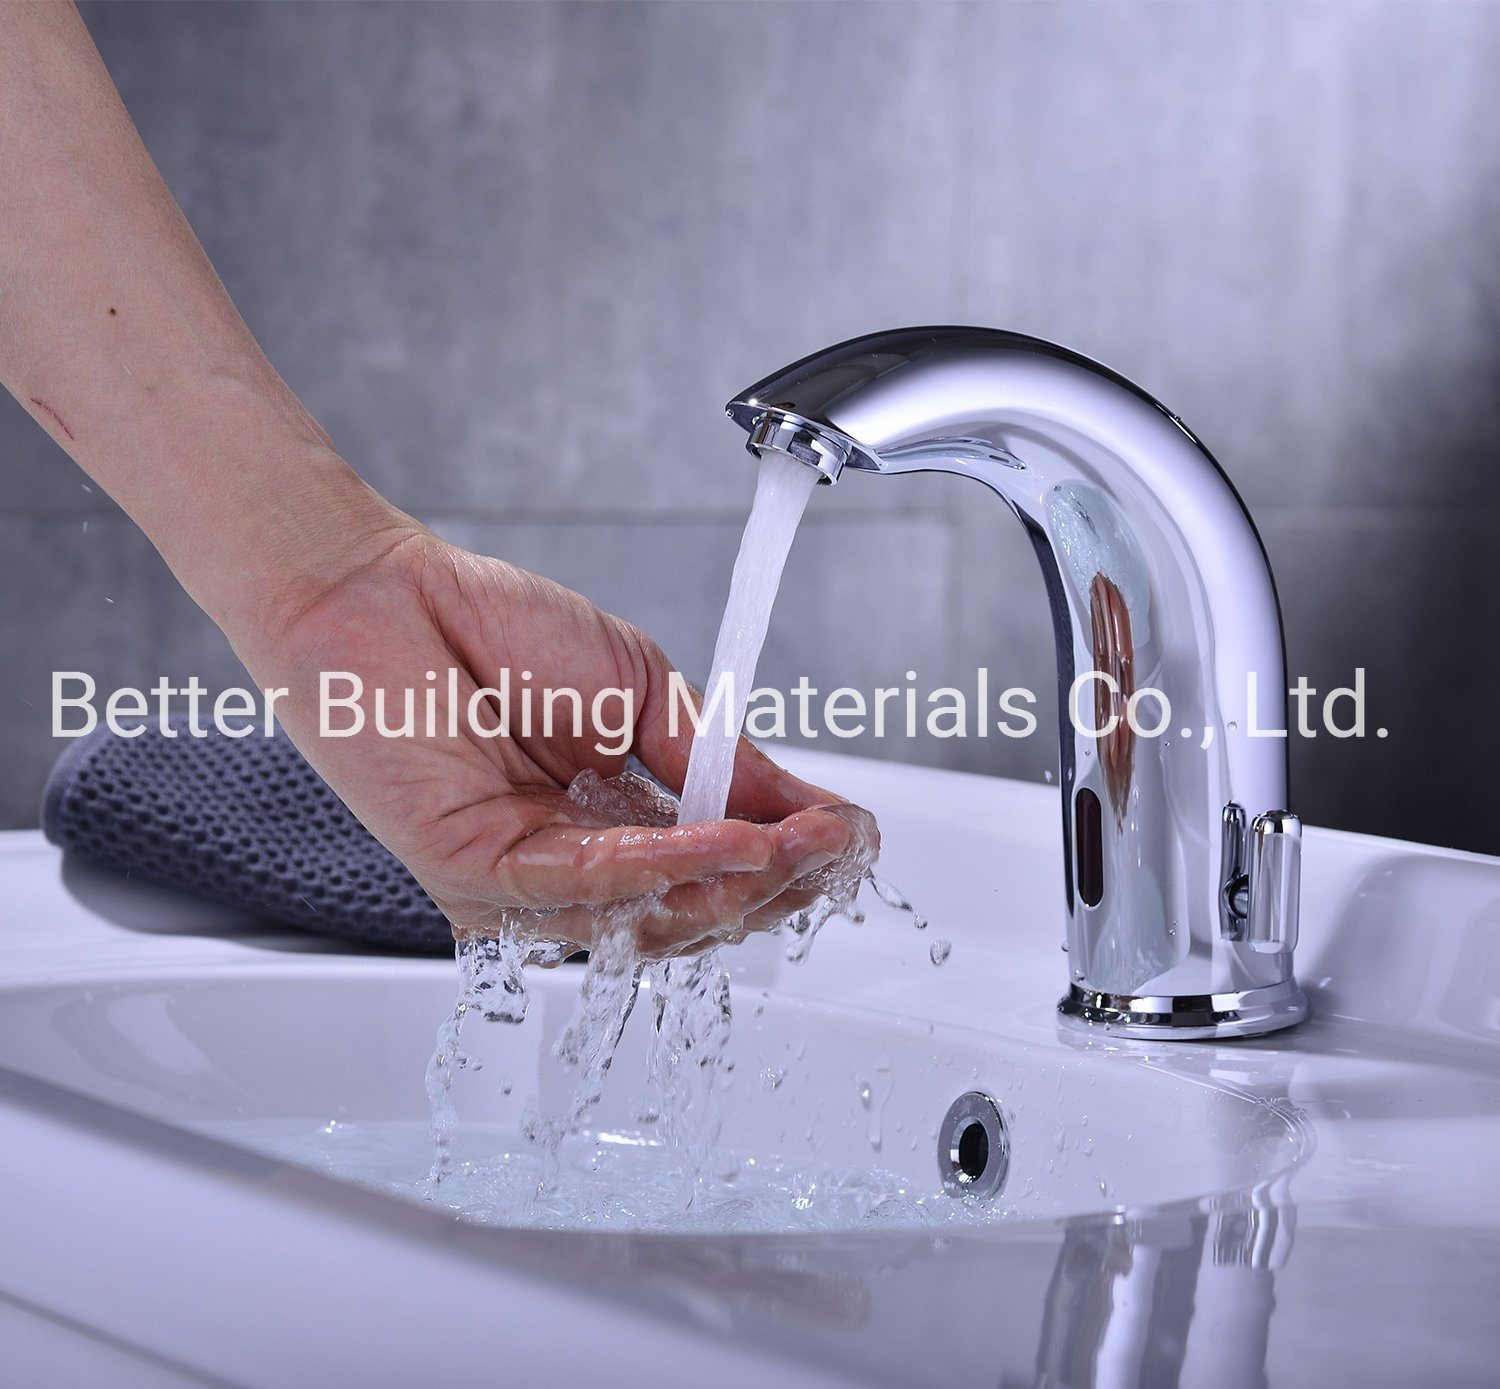 China Automatic Sensor Touchless Bathroom Sink Faucet With Hole Cover Plate Vanity Faucets Hands Free Bathroom Water Tap China Kitchen Tap Kitech Sink Mixer